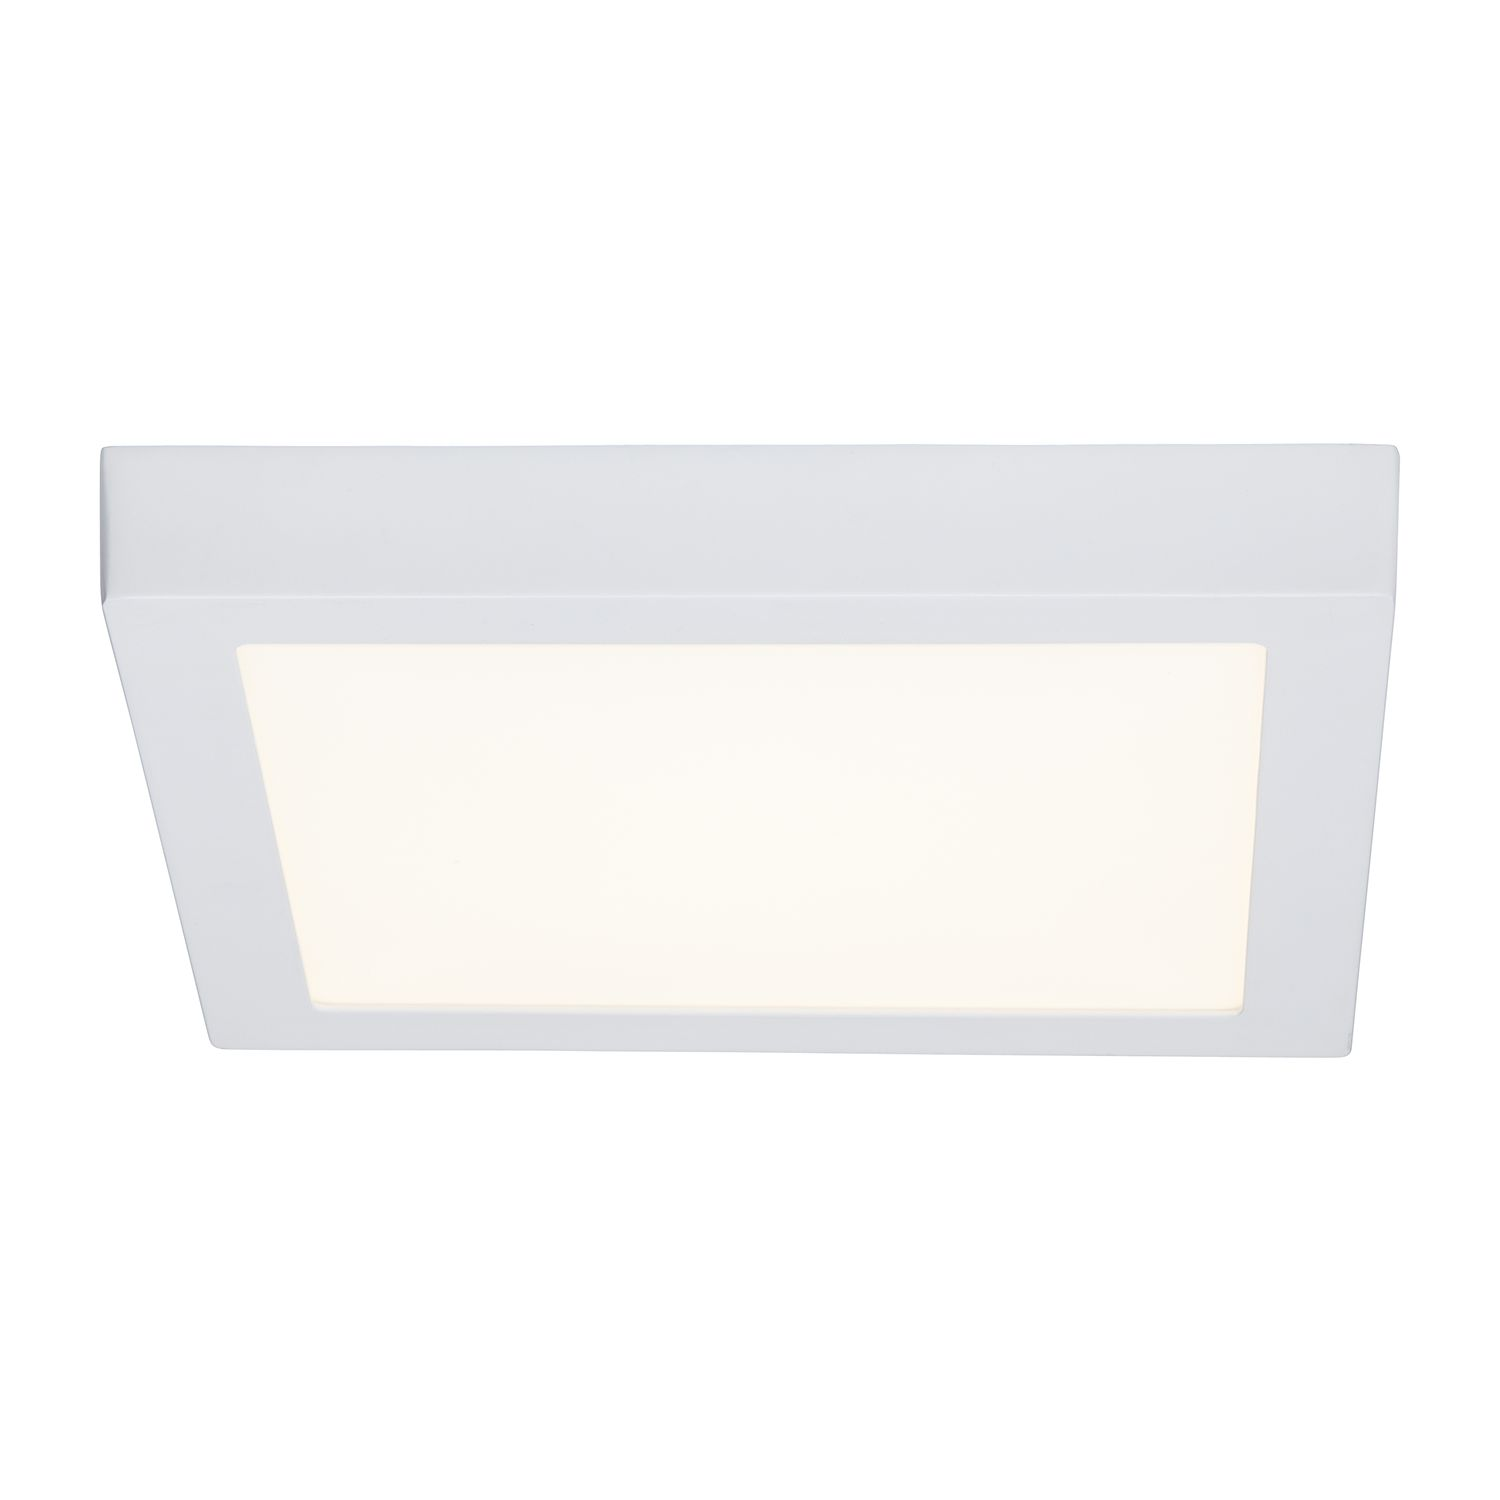 energie  A+, LED-lamp Jarno - metaal wit 1 lichtbron, Brilliant